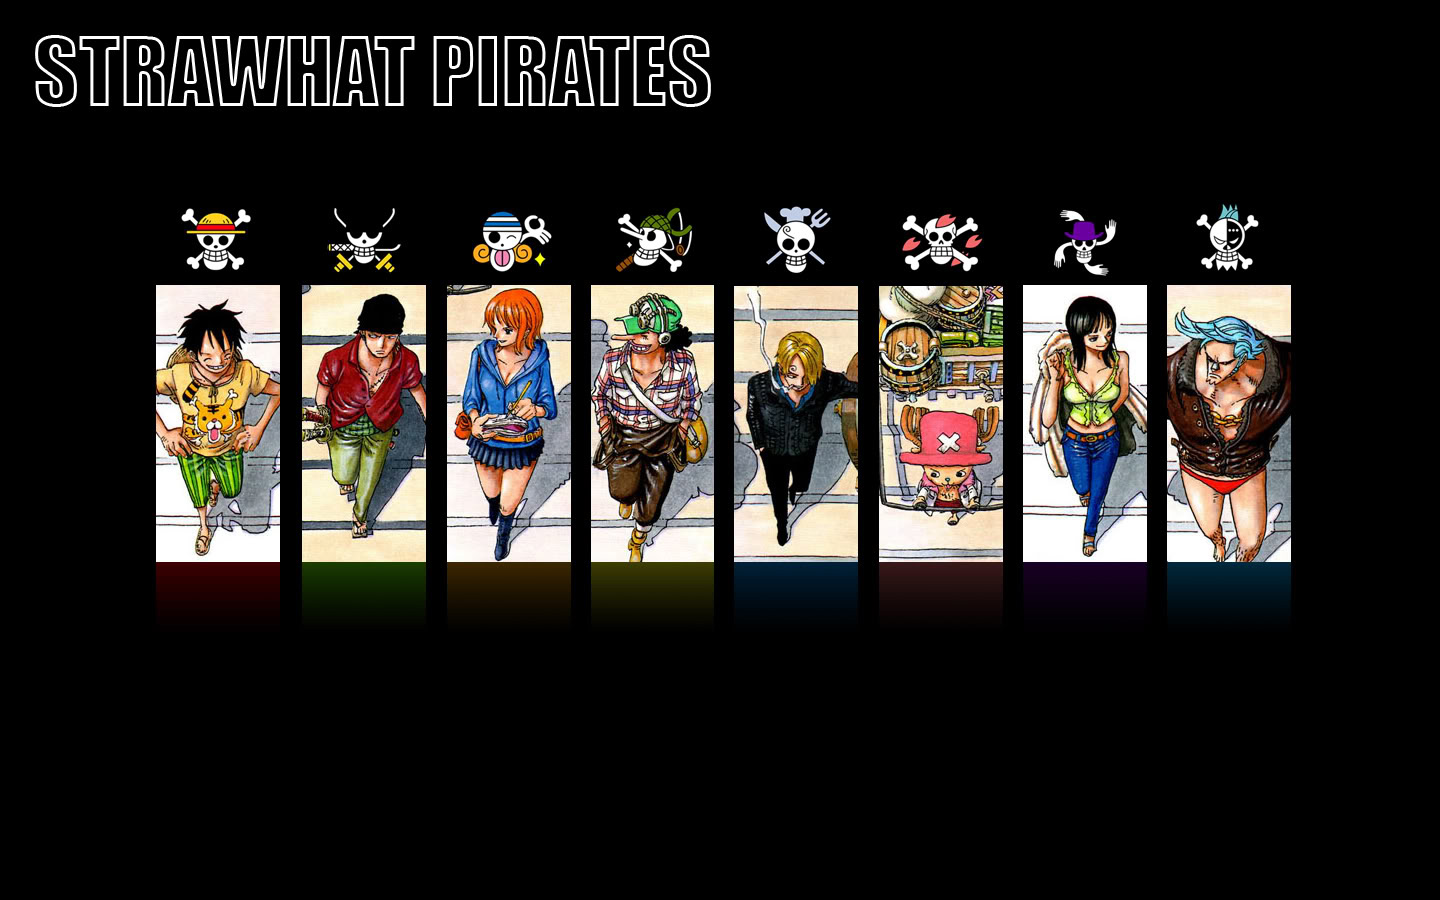 Strawhat Pirates Flags Wallpaper Download   1440x900 1440x900